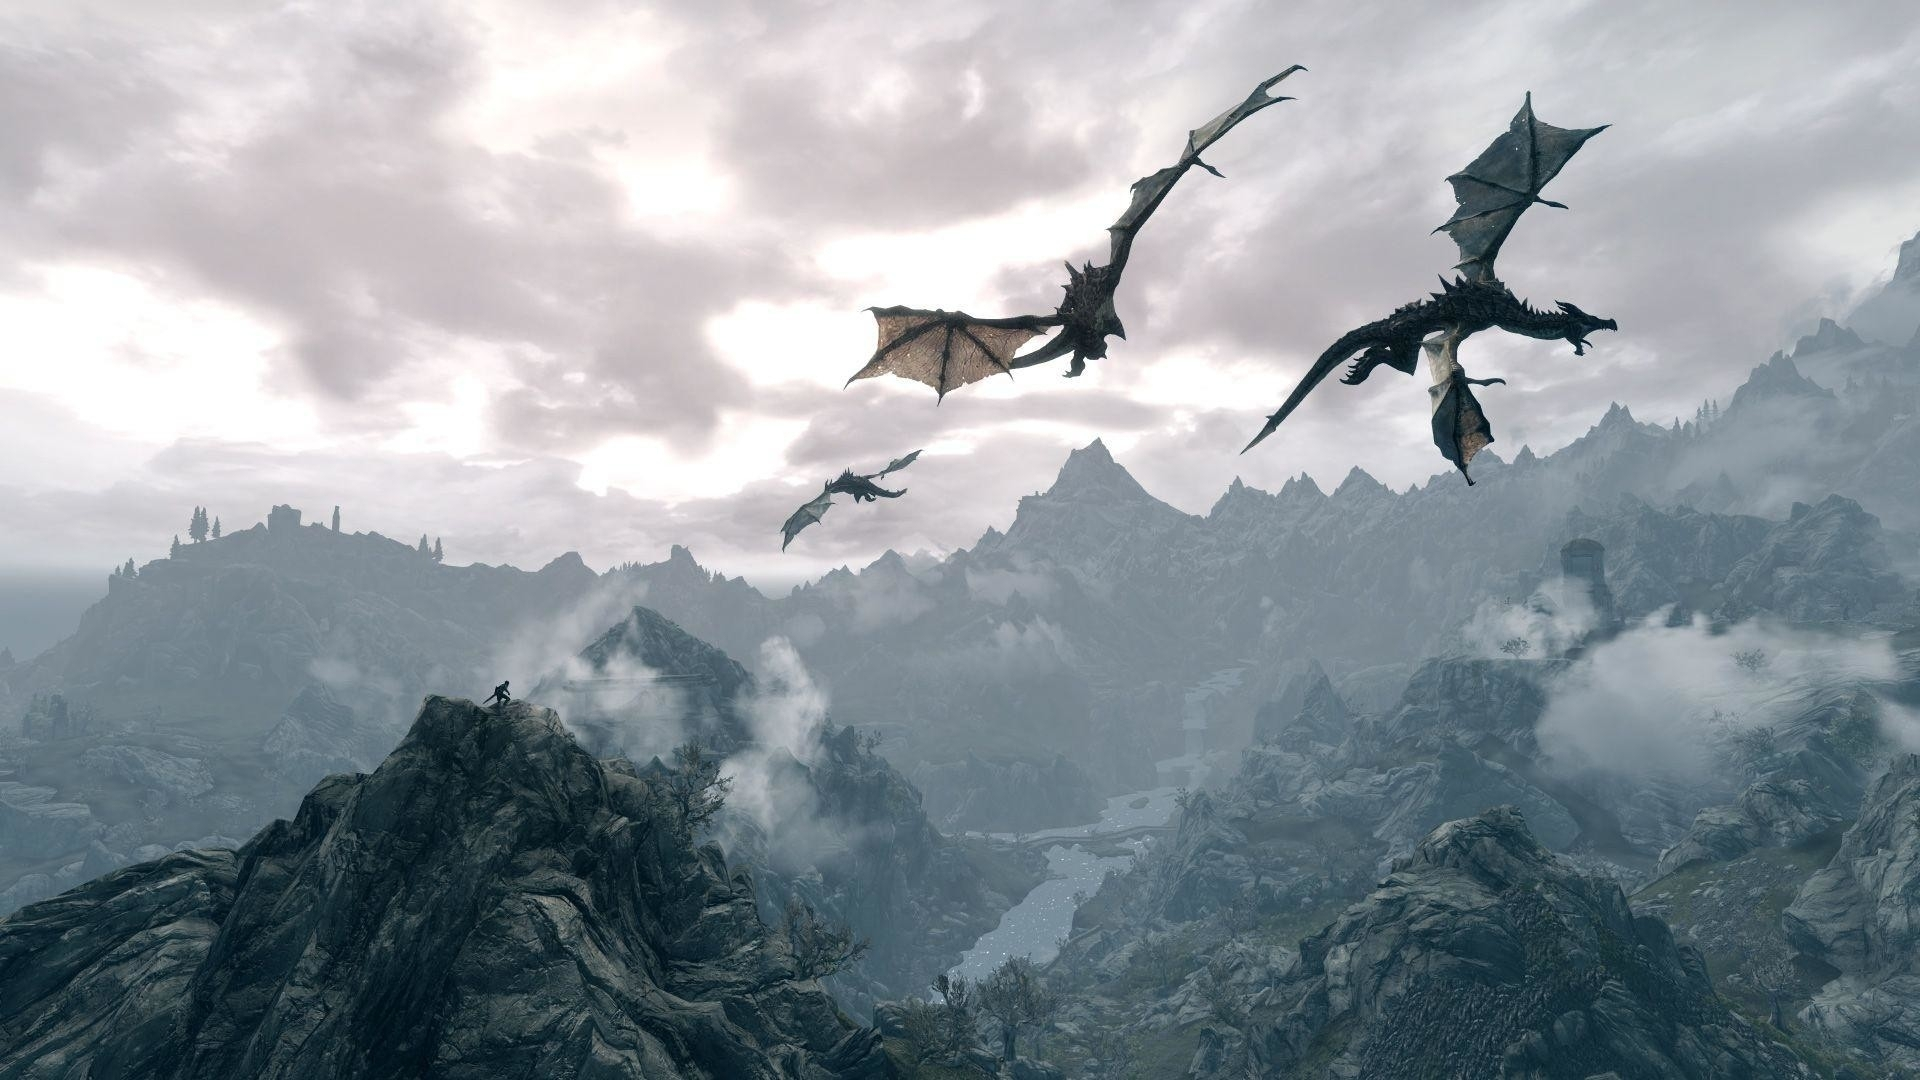 skyrim desktop dragon wallpaper (71+ images)